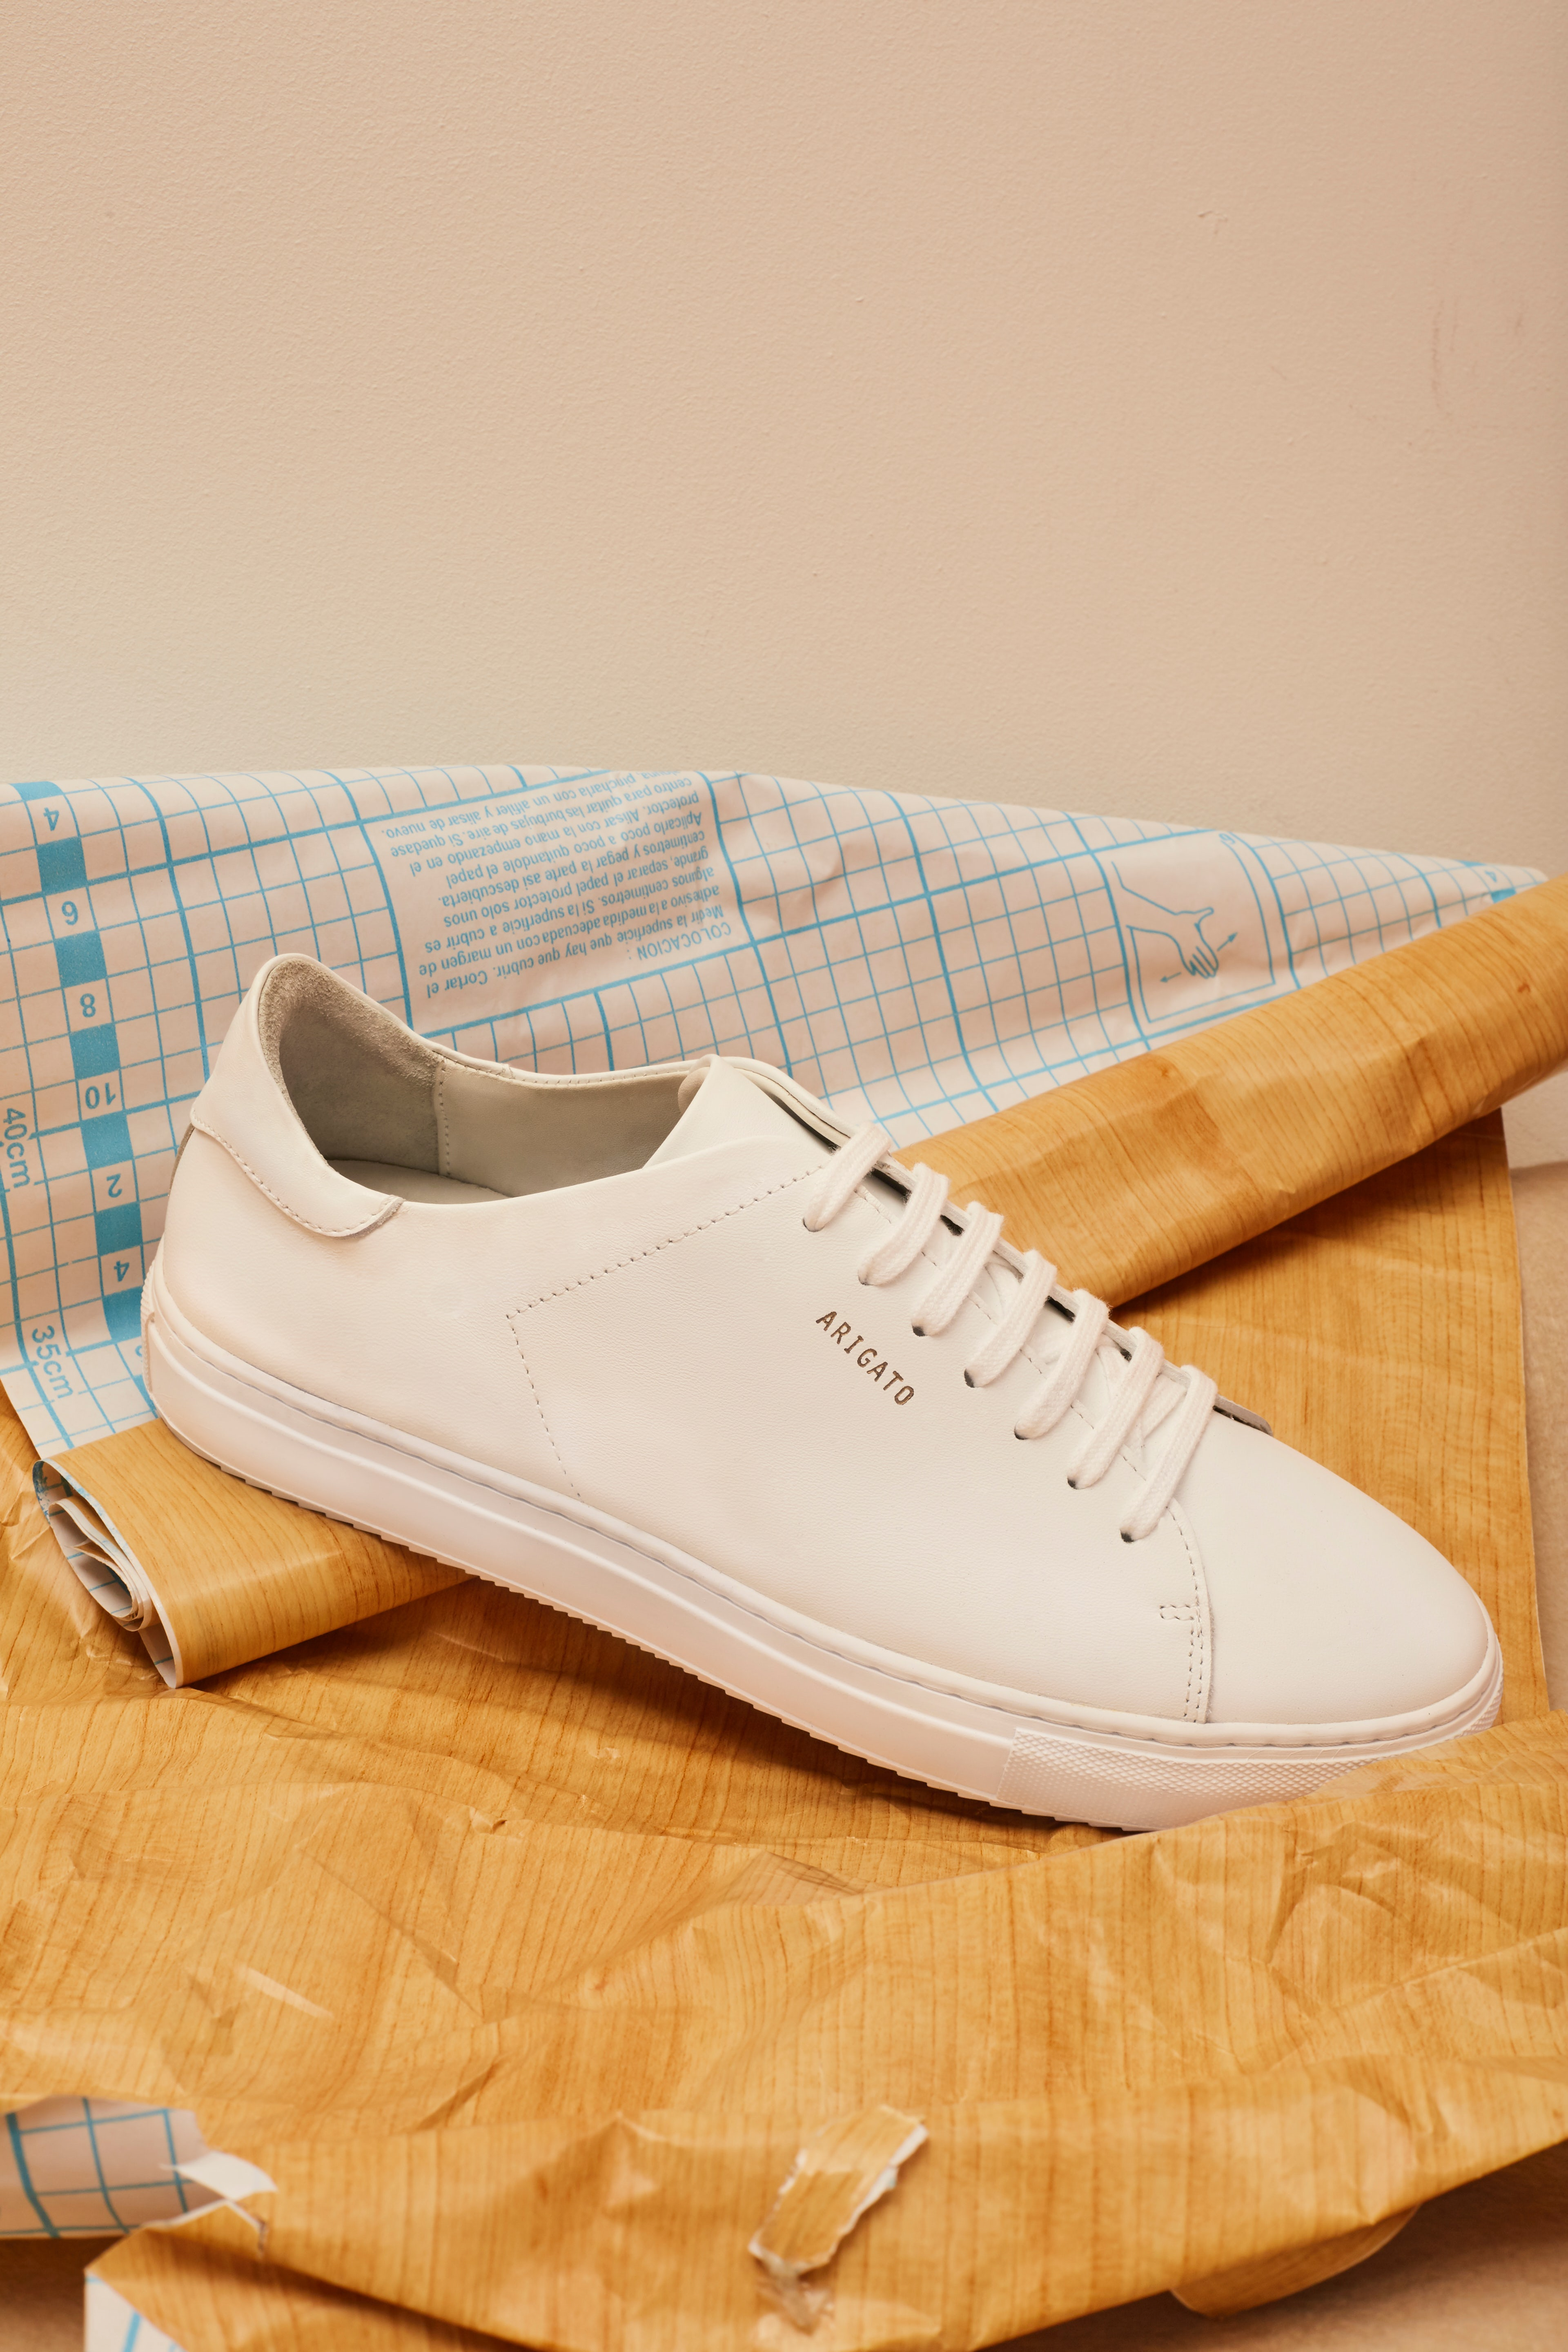 The Big Business of White Sneakers